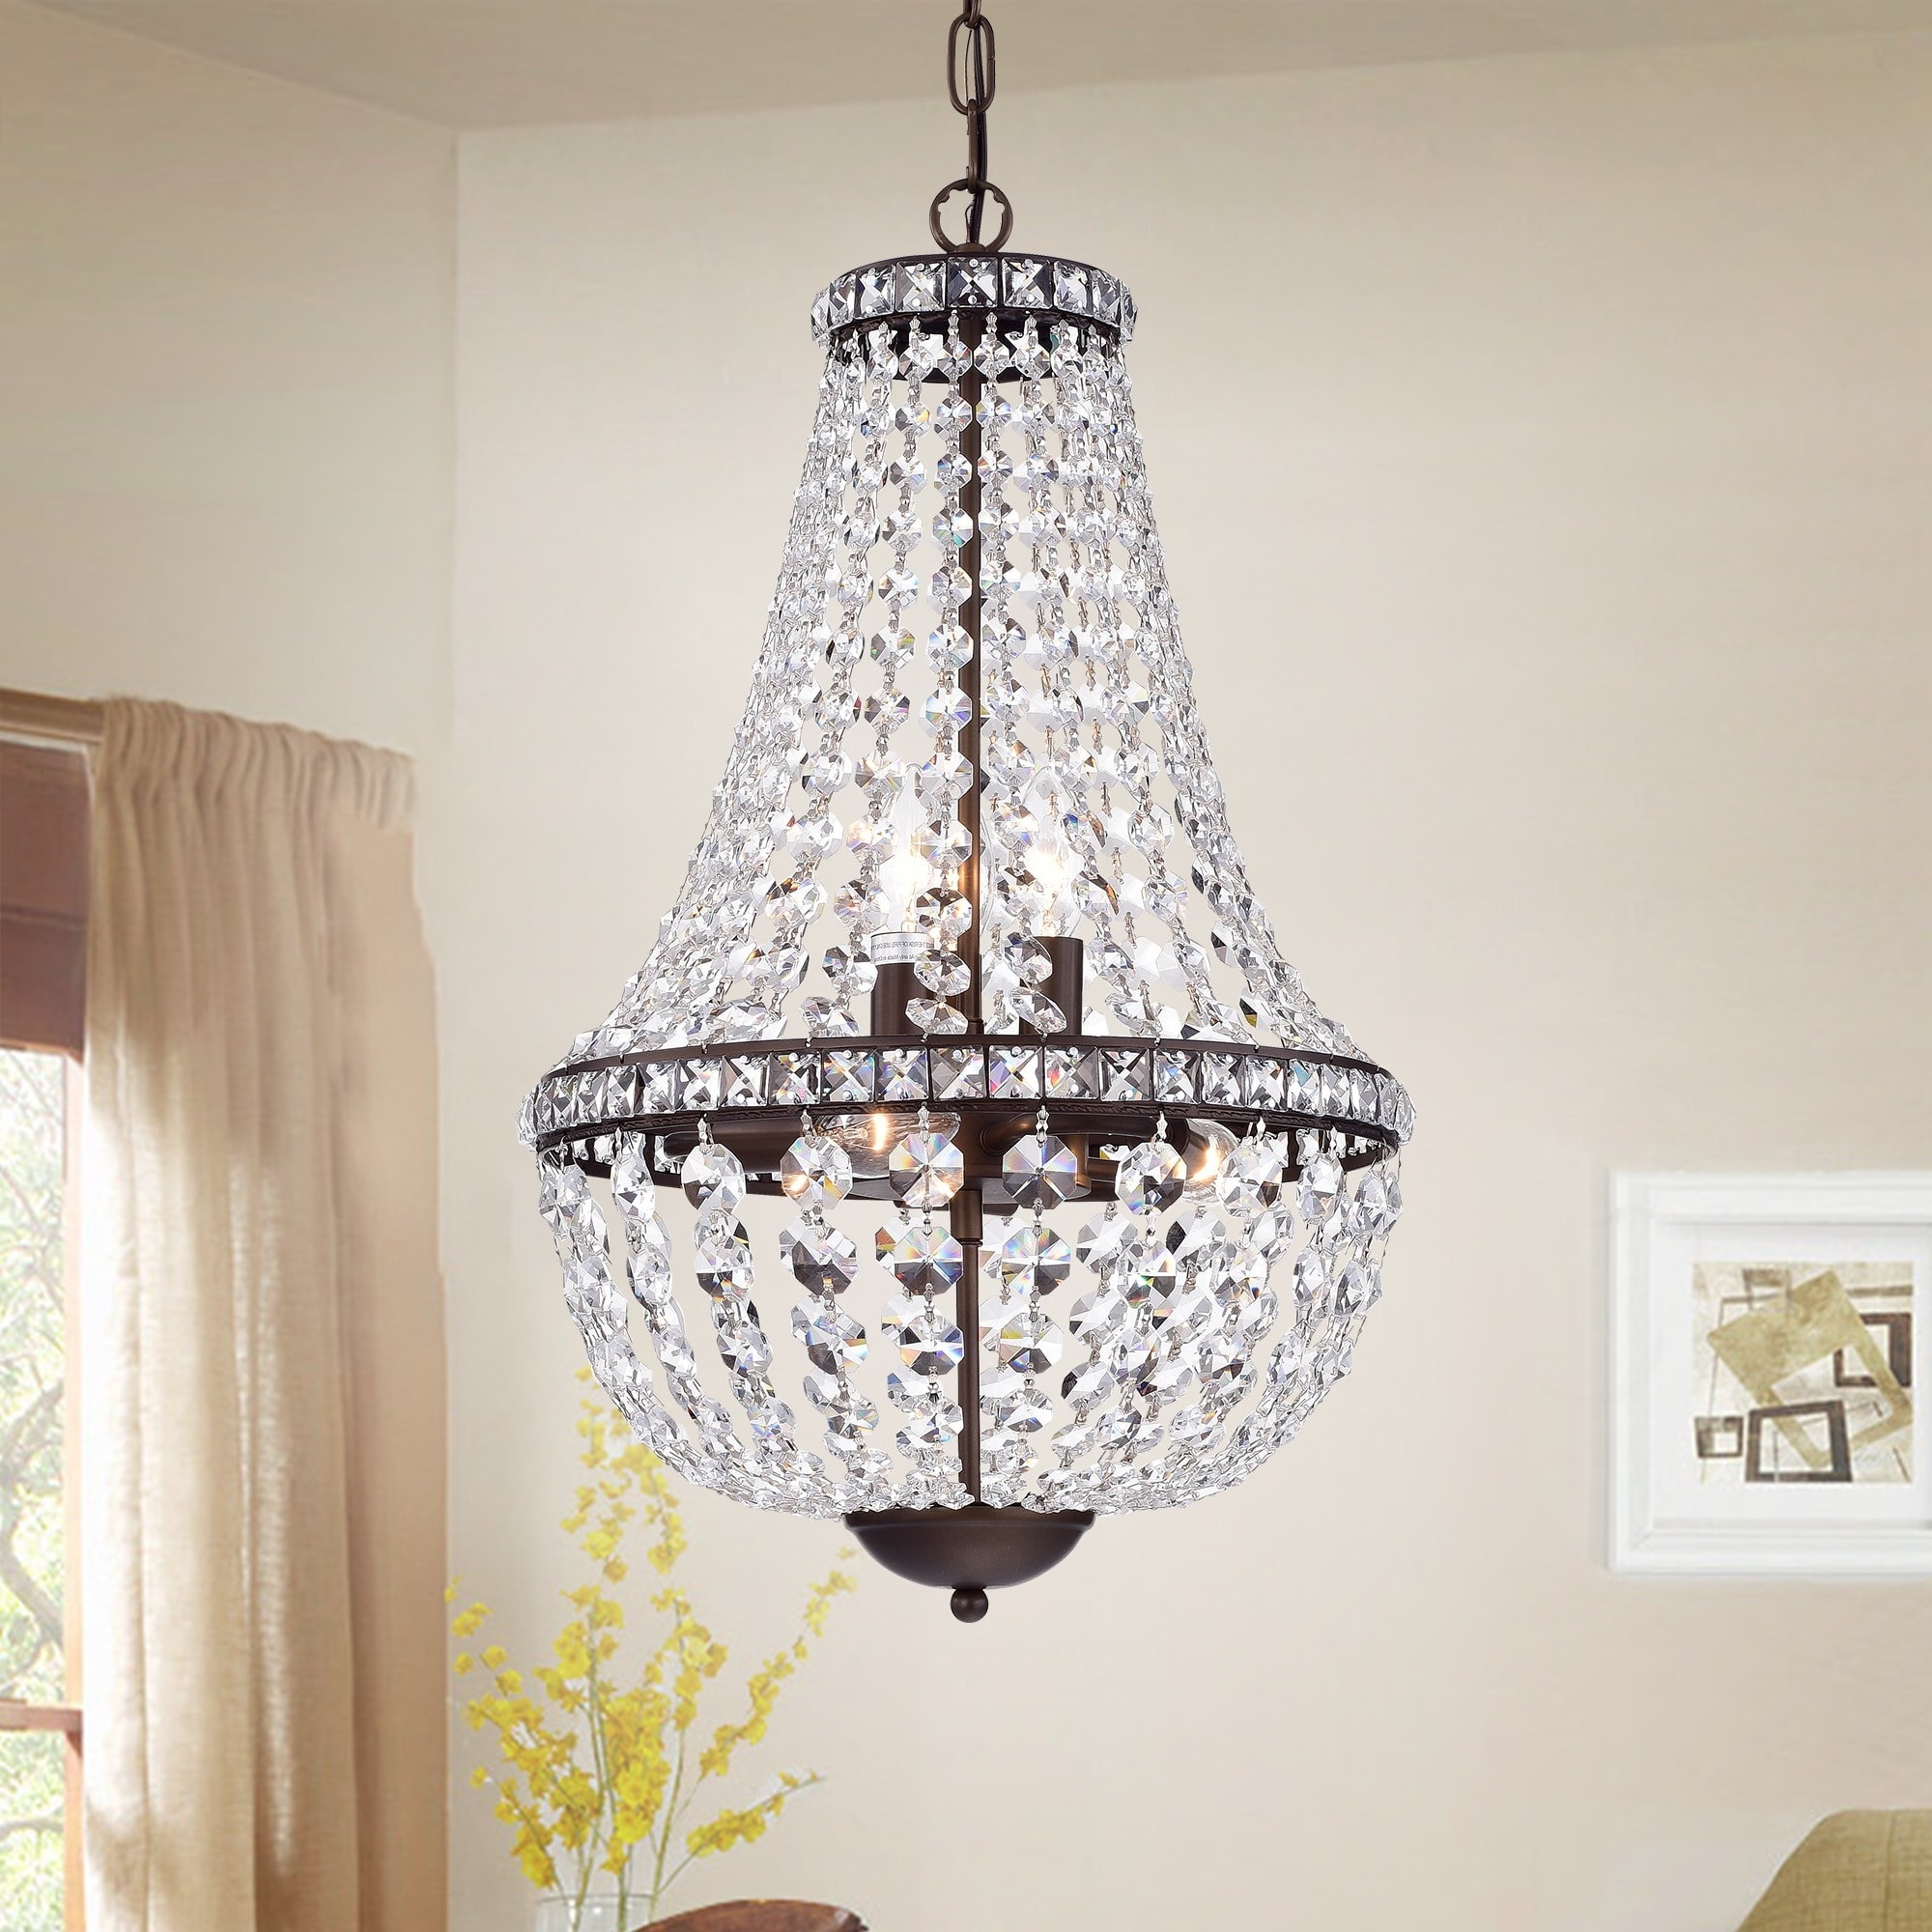 Favorite Uanah 6 Light Crystal Antique Black Chandelier – Free Shipping Today Intended For Antique Black Chandelier (View 8 of 15)